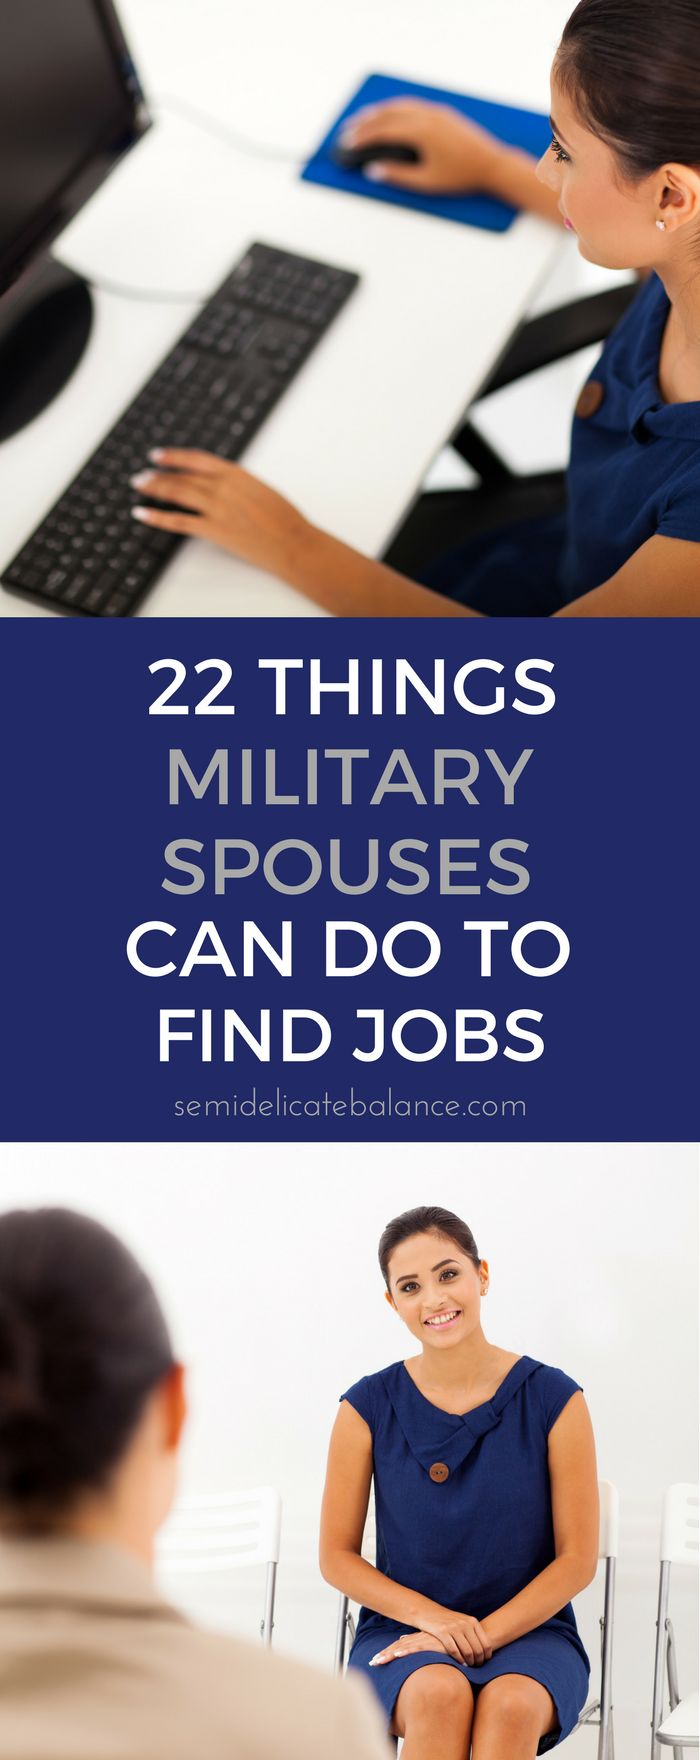 Job tips and advice for military spouse employment